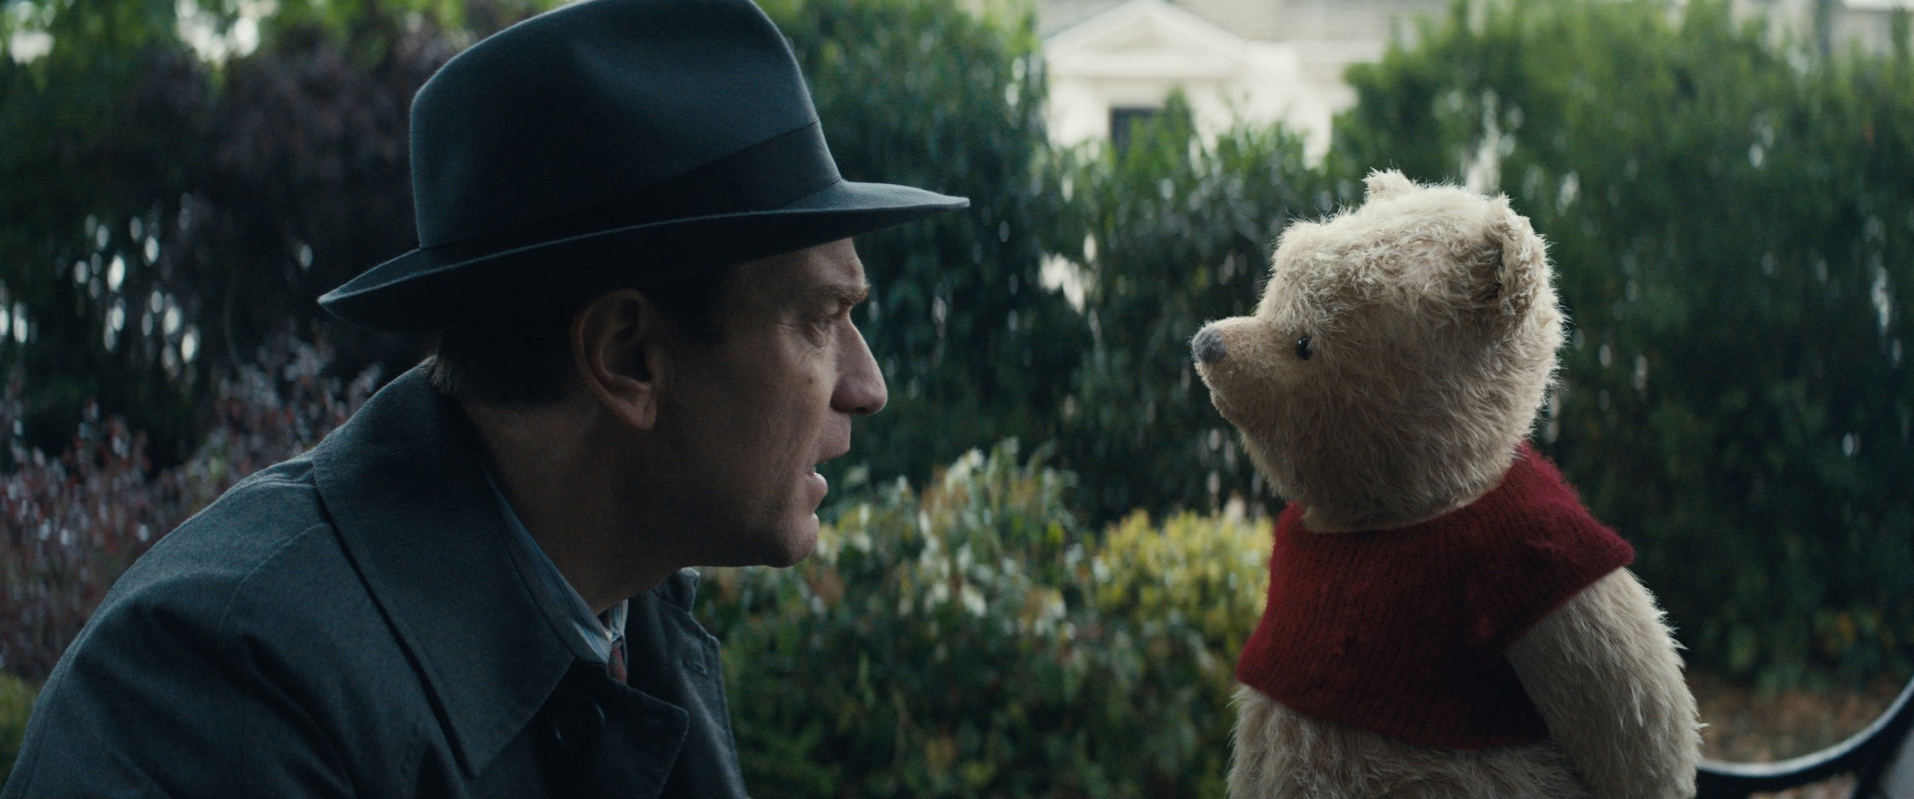 "An adult Christopher Robin (Ewan McGregor) has an unexpected reunion with his childhood friend, Winnie the Pooh, in Disney's live-action adventure ""Christopher Robin."" (Photo courtesy Walt Disney Pictures)"